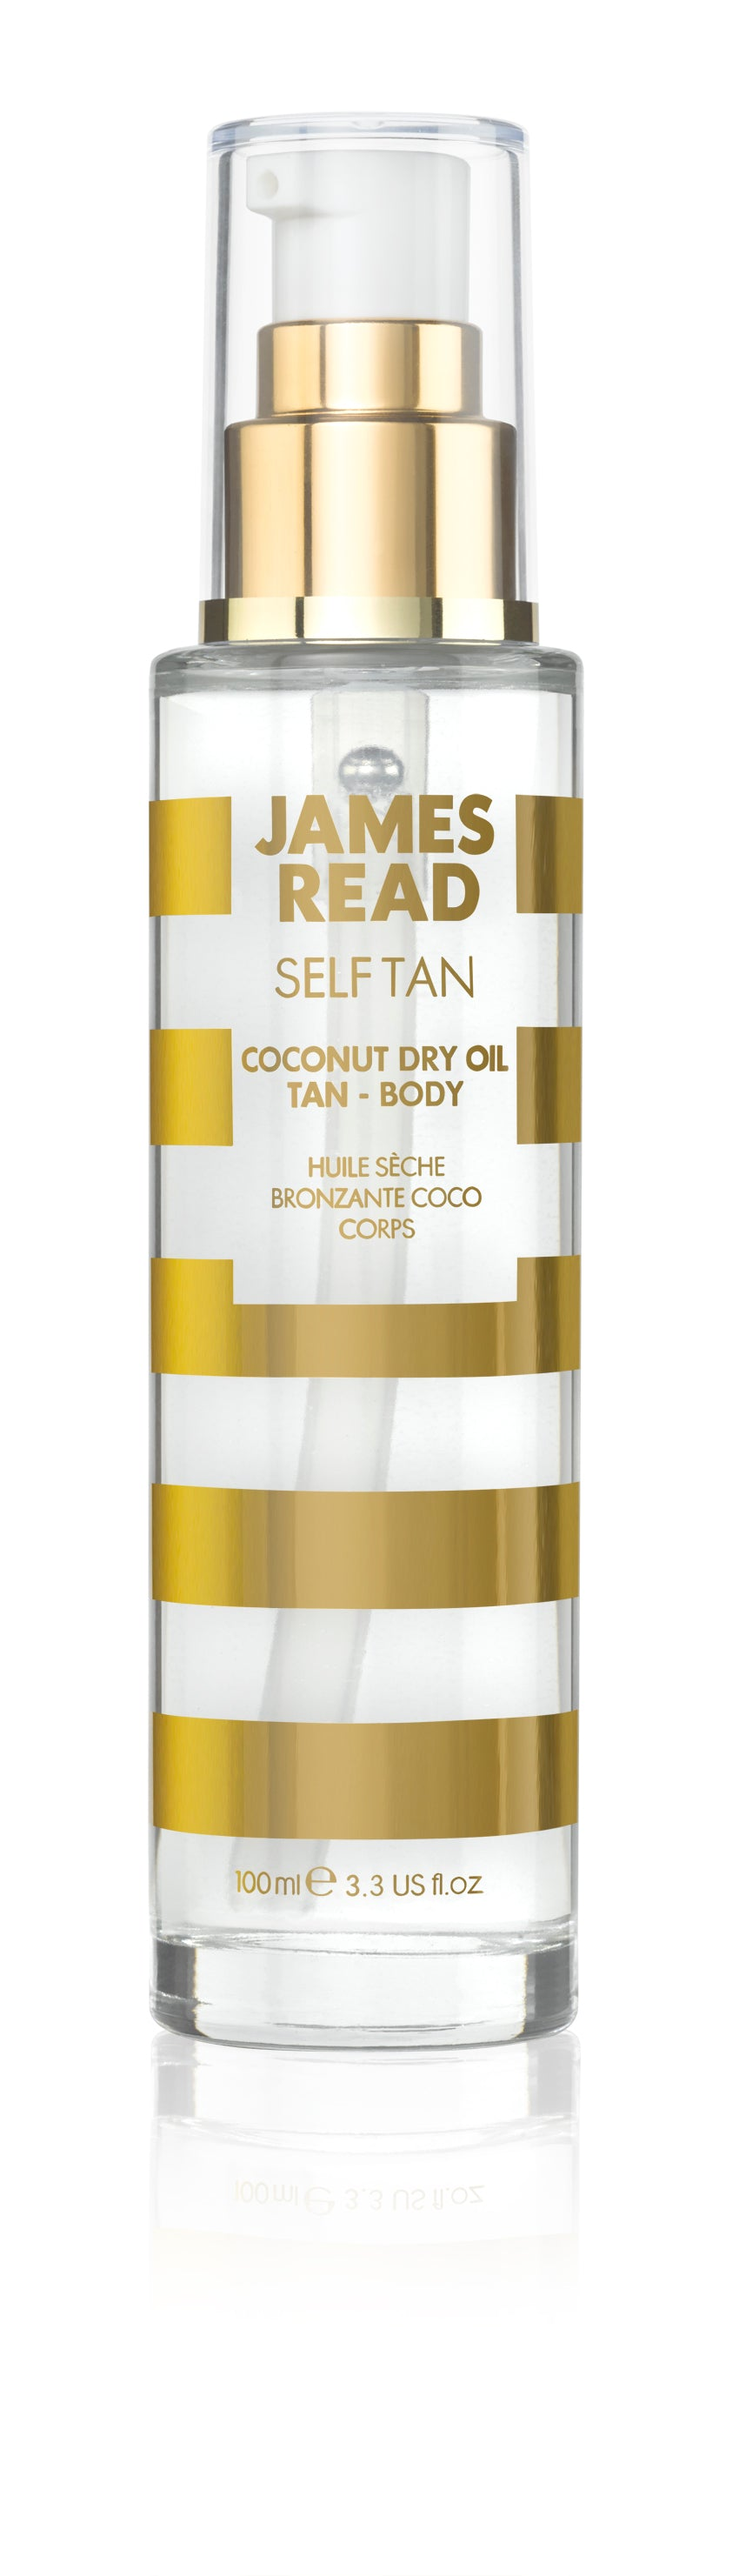 JAMES READ COCONUT DRY OIL TAN